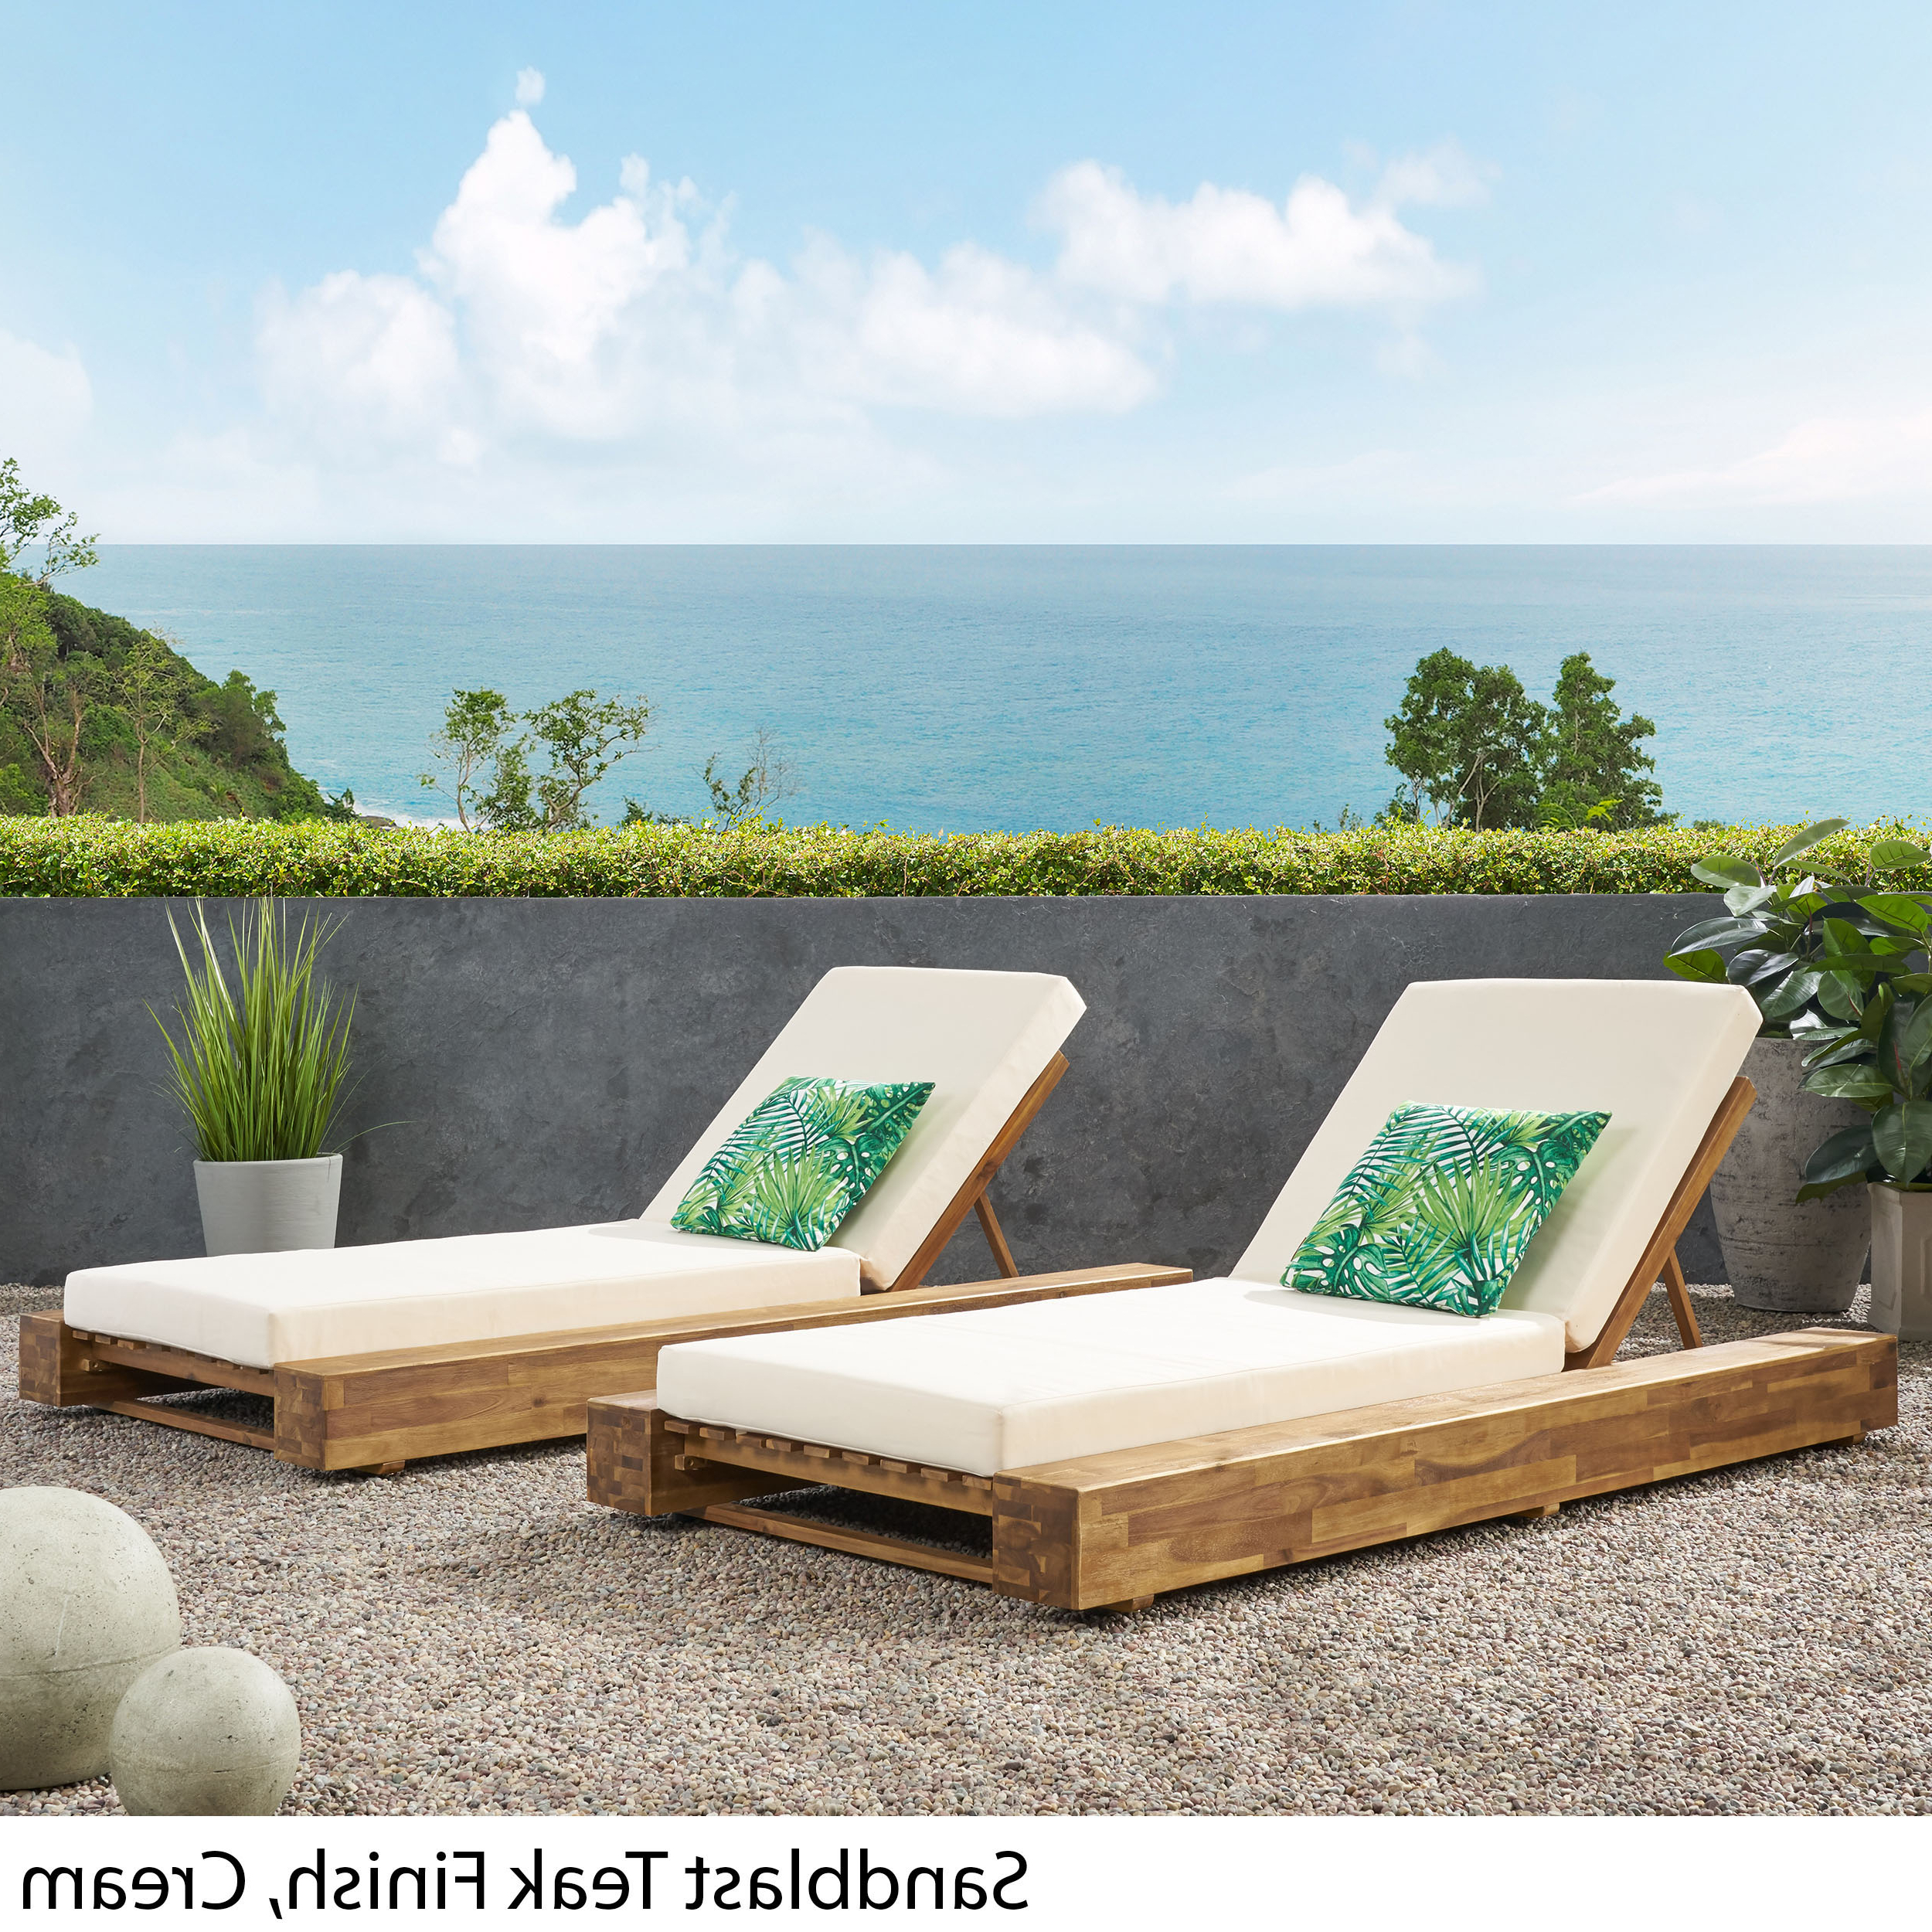 Outdoor Acacia Wood Chaise Lounges With Cushion For Well Known Details About Ursula Outdoor Acacia Wood Chaise Lounge And Cushion Sets (set Of 2) (View 9 of 25)